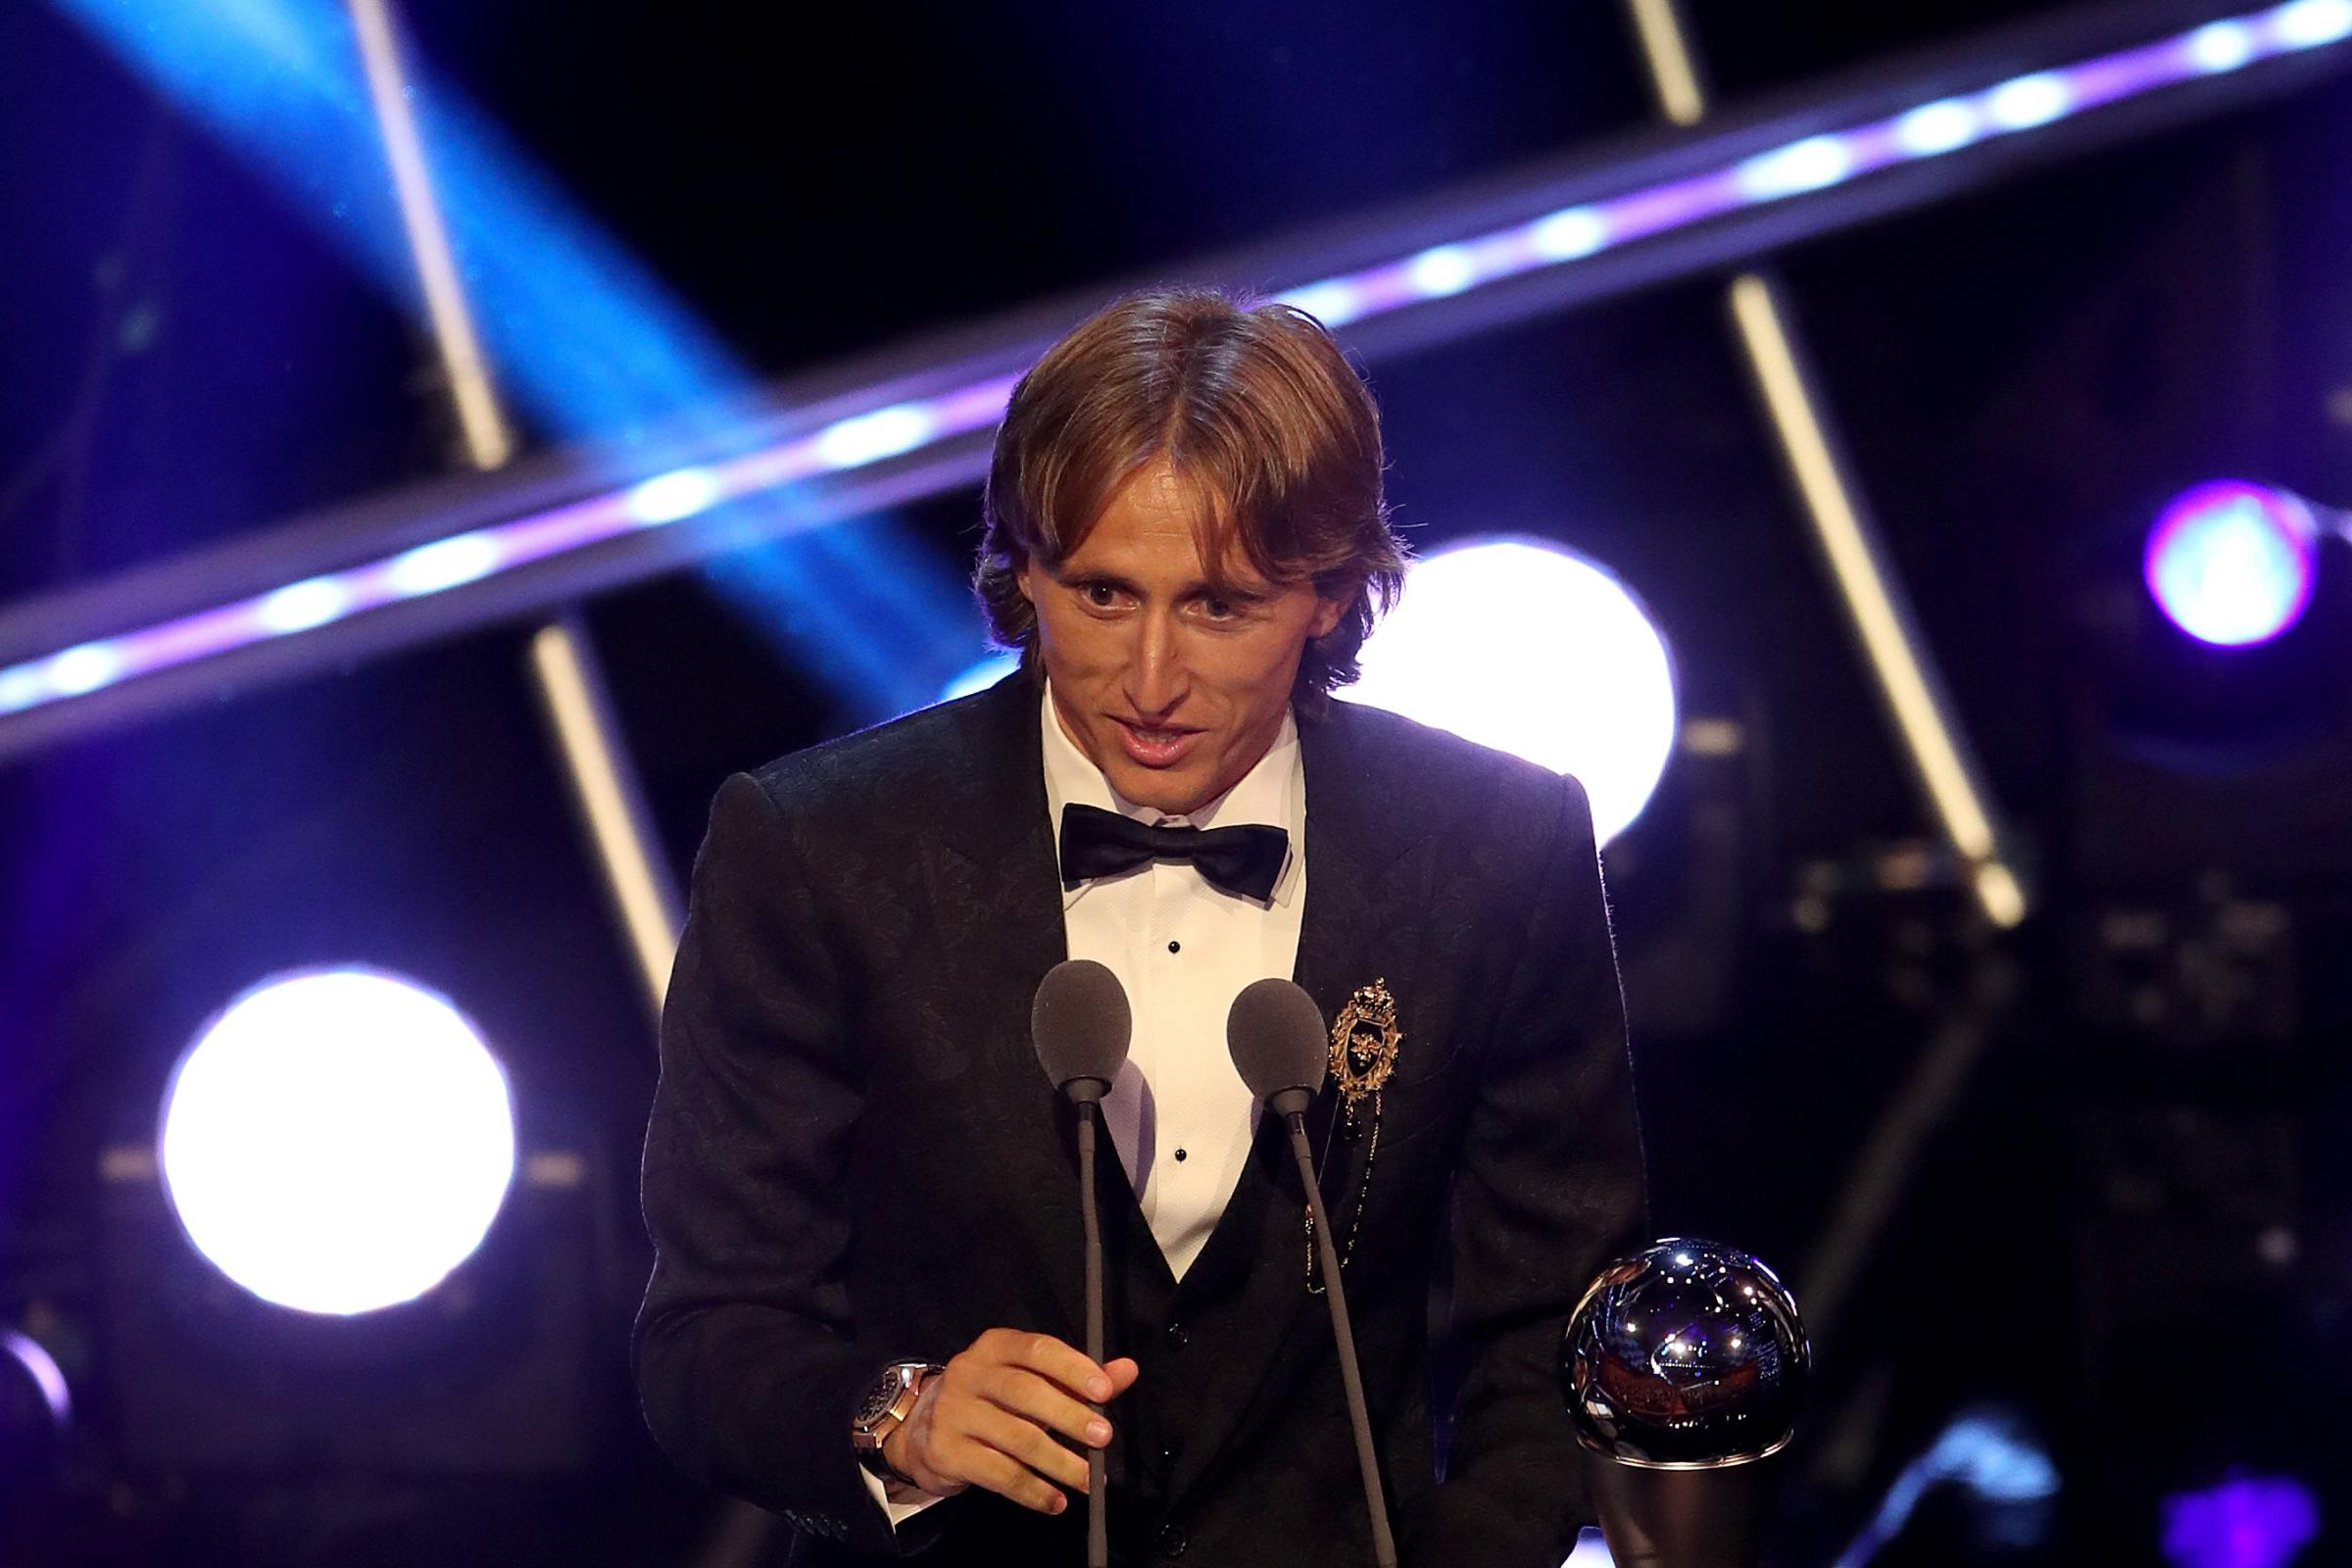 Luka Modric on stage after winning The Best FIFA Men's Player Award